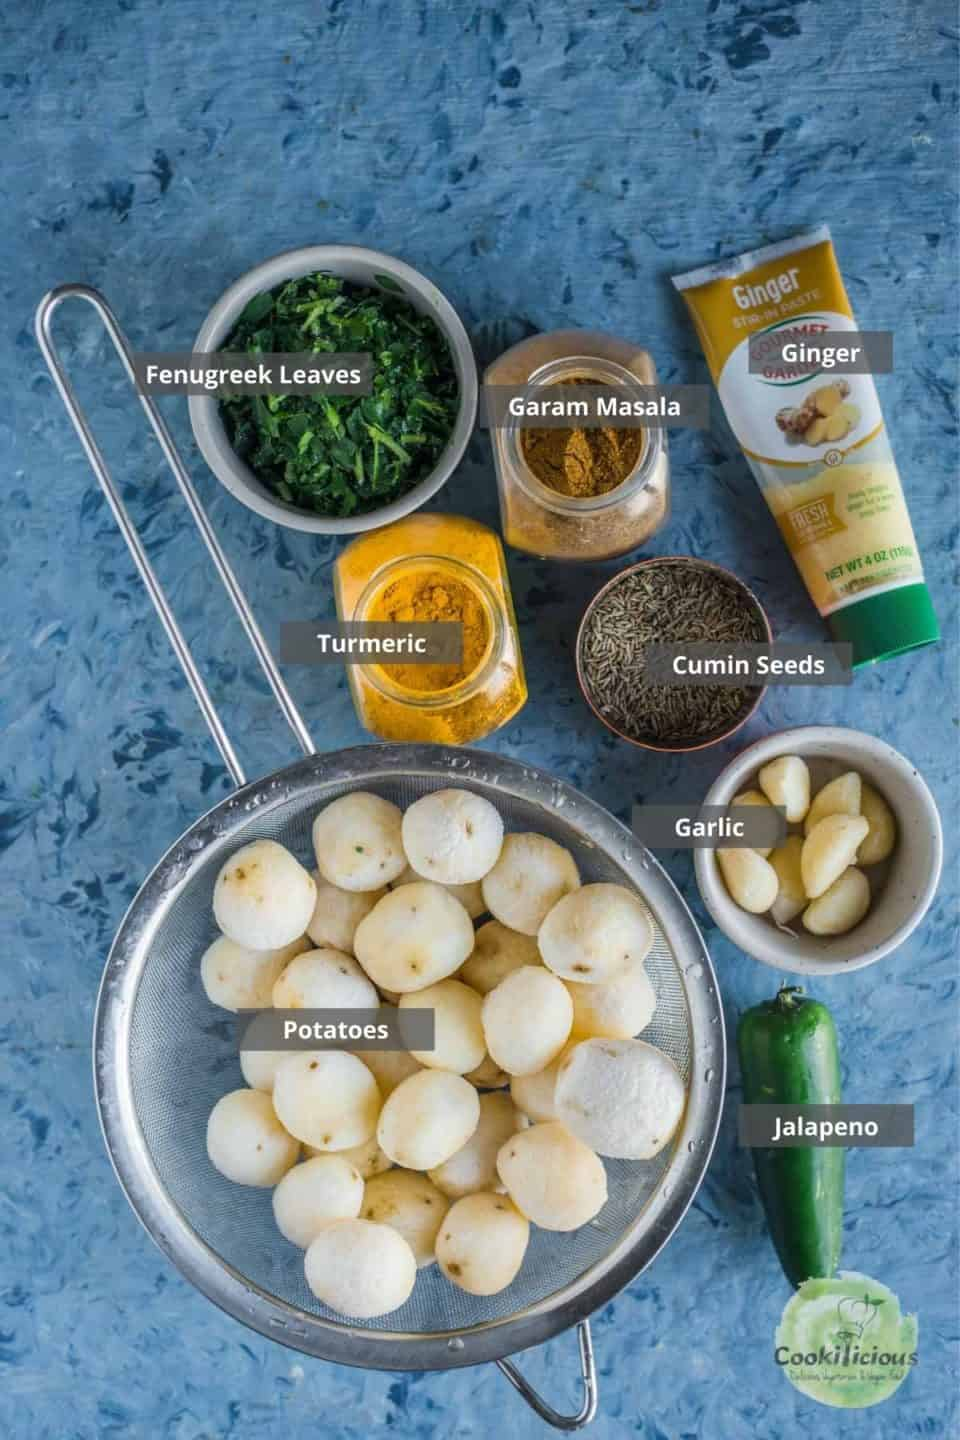 all the ingredients needed to make Aloo Methi placed on a table with labels on them